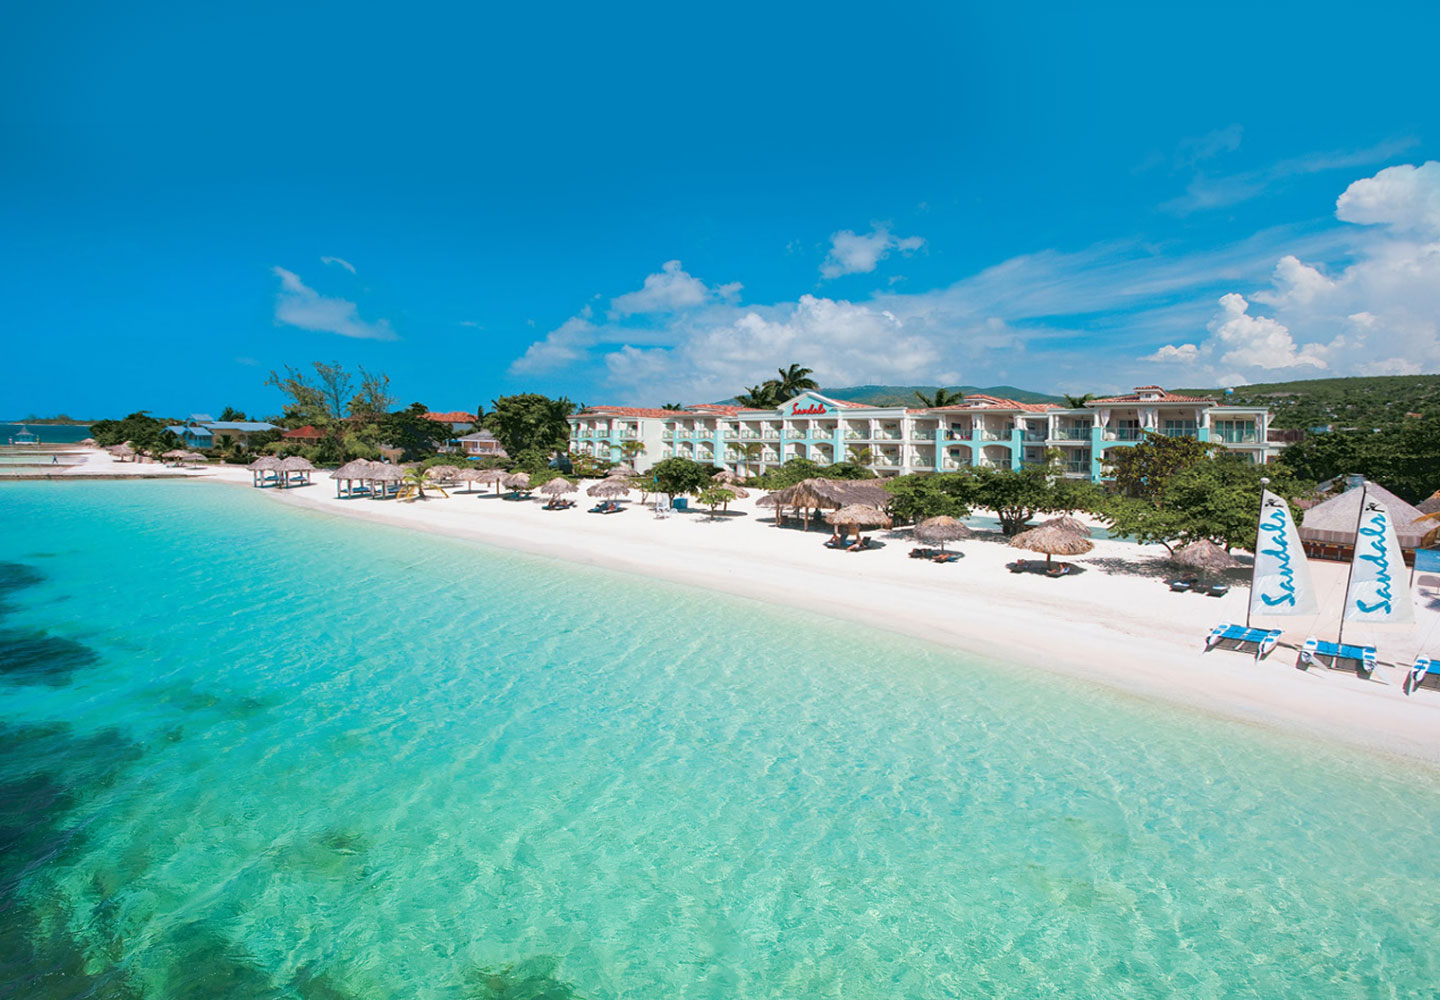 Travel Agency All-Inclusive Resort Sandals Montego Bay 004